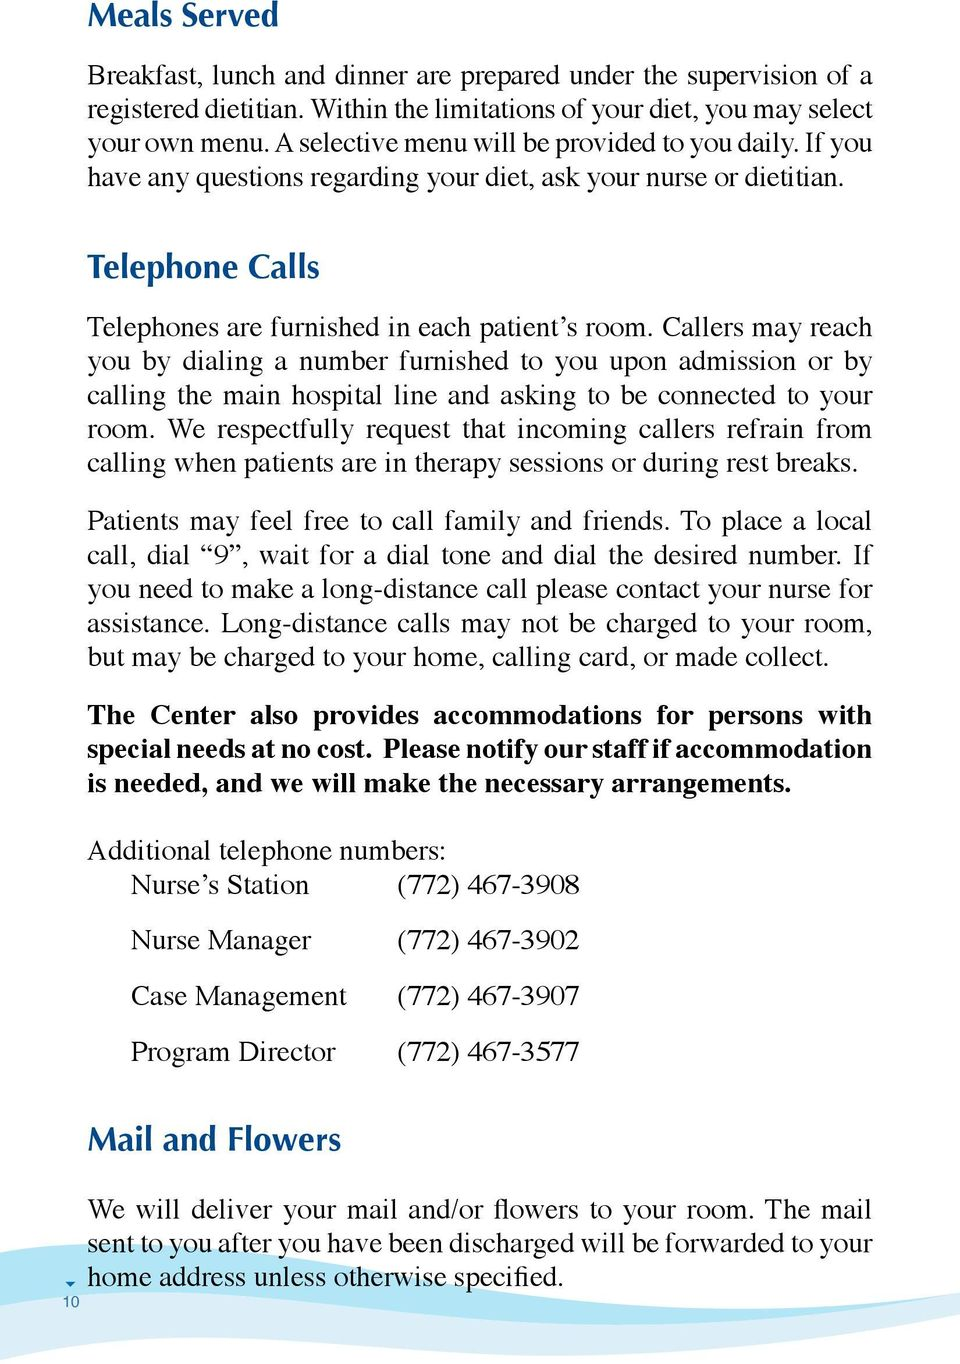 Callers may reach you by dialing a number furnished to you upon admission or by calling the main hospital line and asking to be connected to your room.